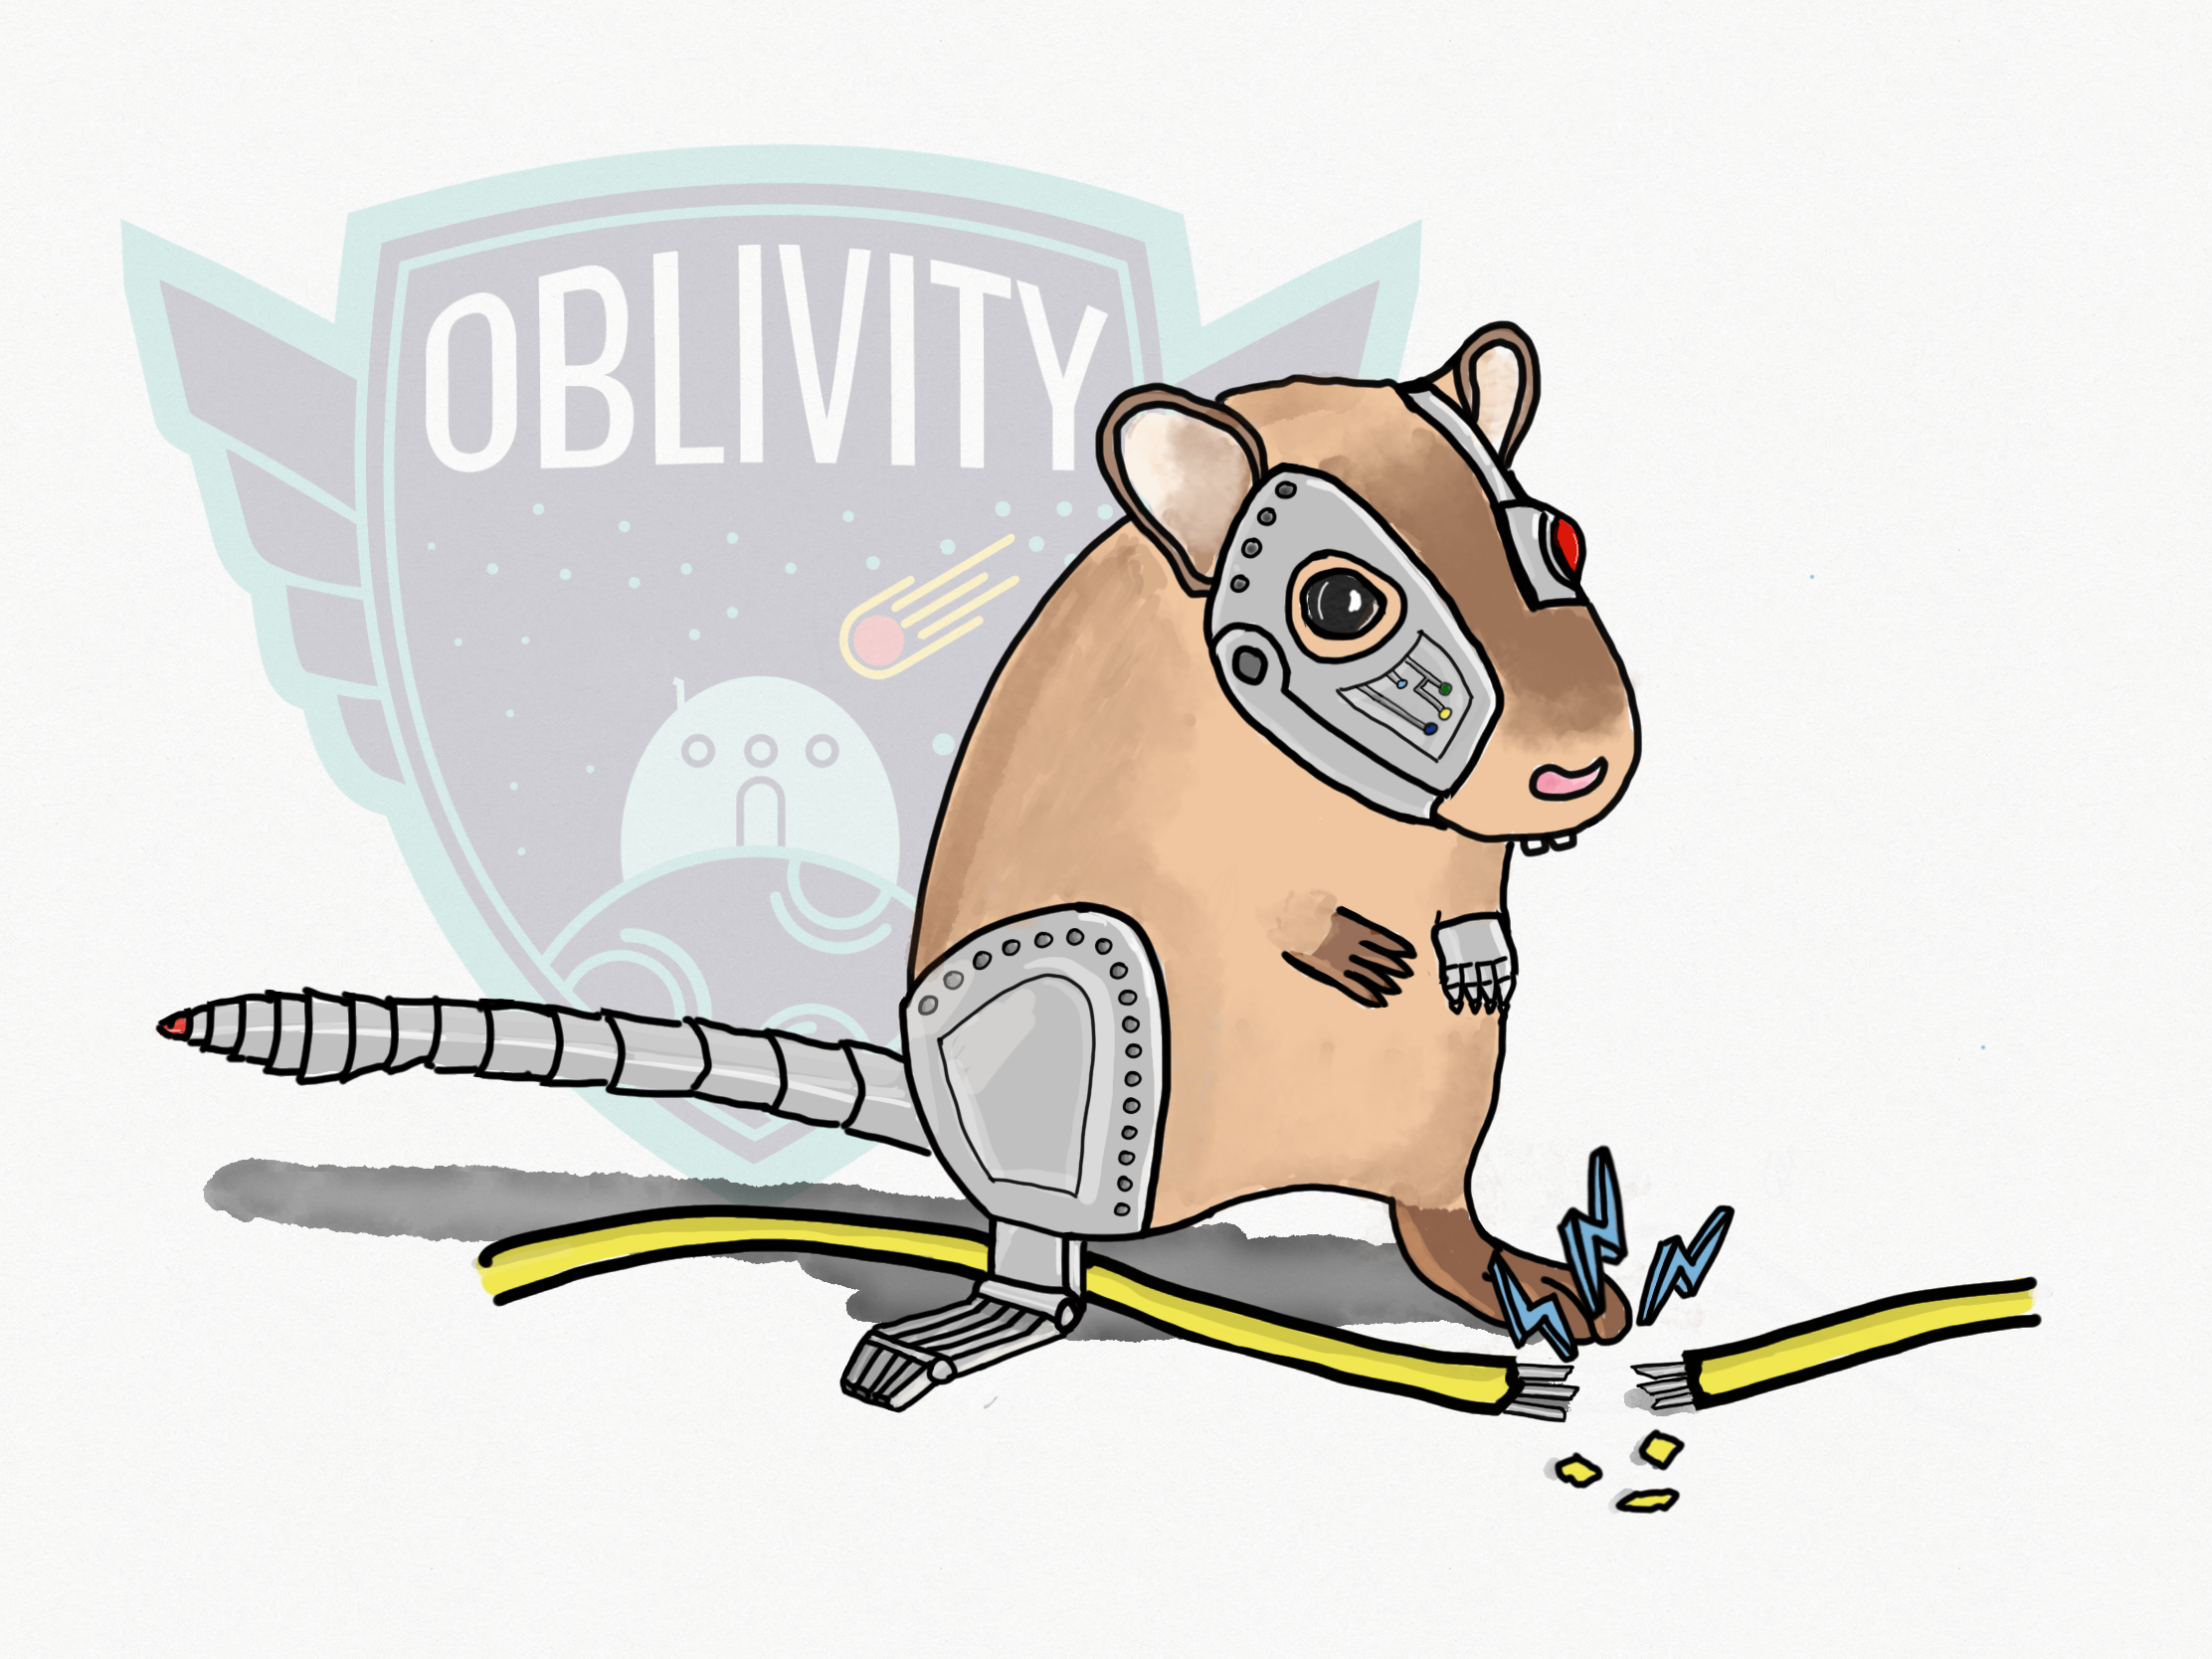 A MALEVOLENT BUT OH-SO-CUTE CYBERGERBIL - IMAGINED BY JAMES STRINGER